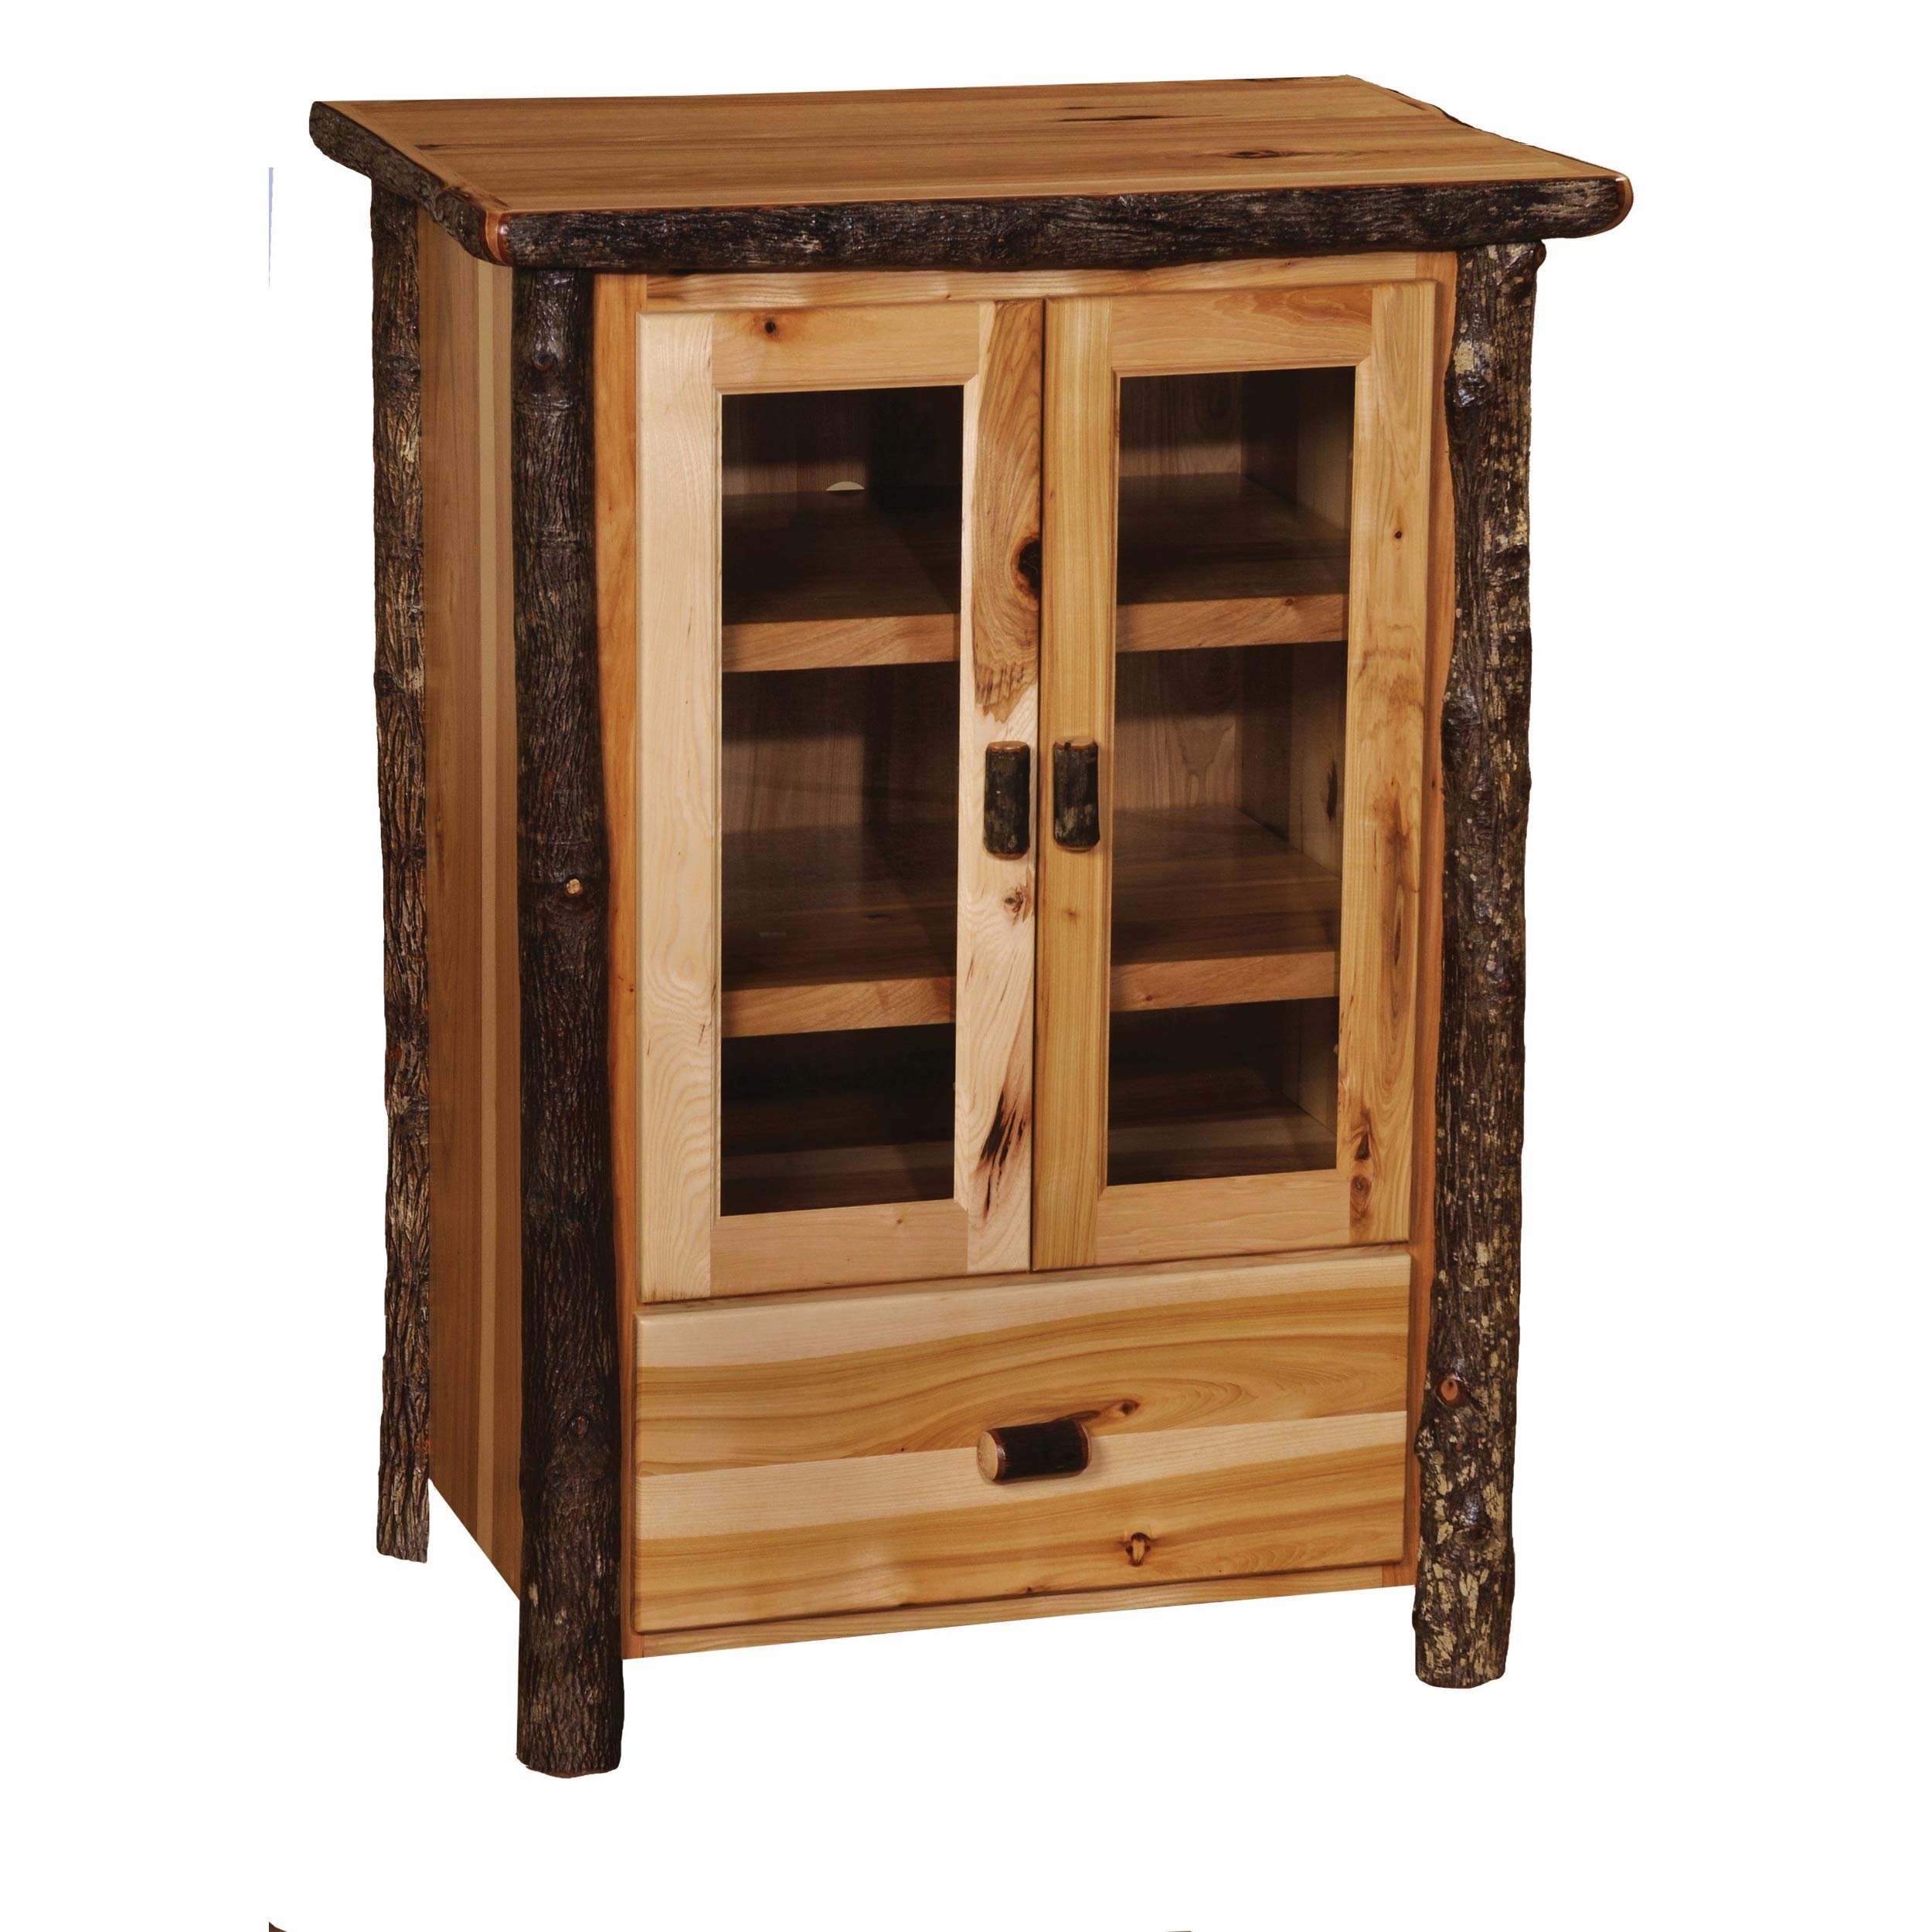 Fireside Lodge Authentic Hickory Log Media Cabinet - Handcrafted USA in Euro Style by Fireside Lodge